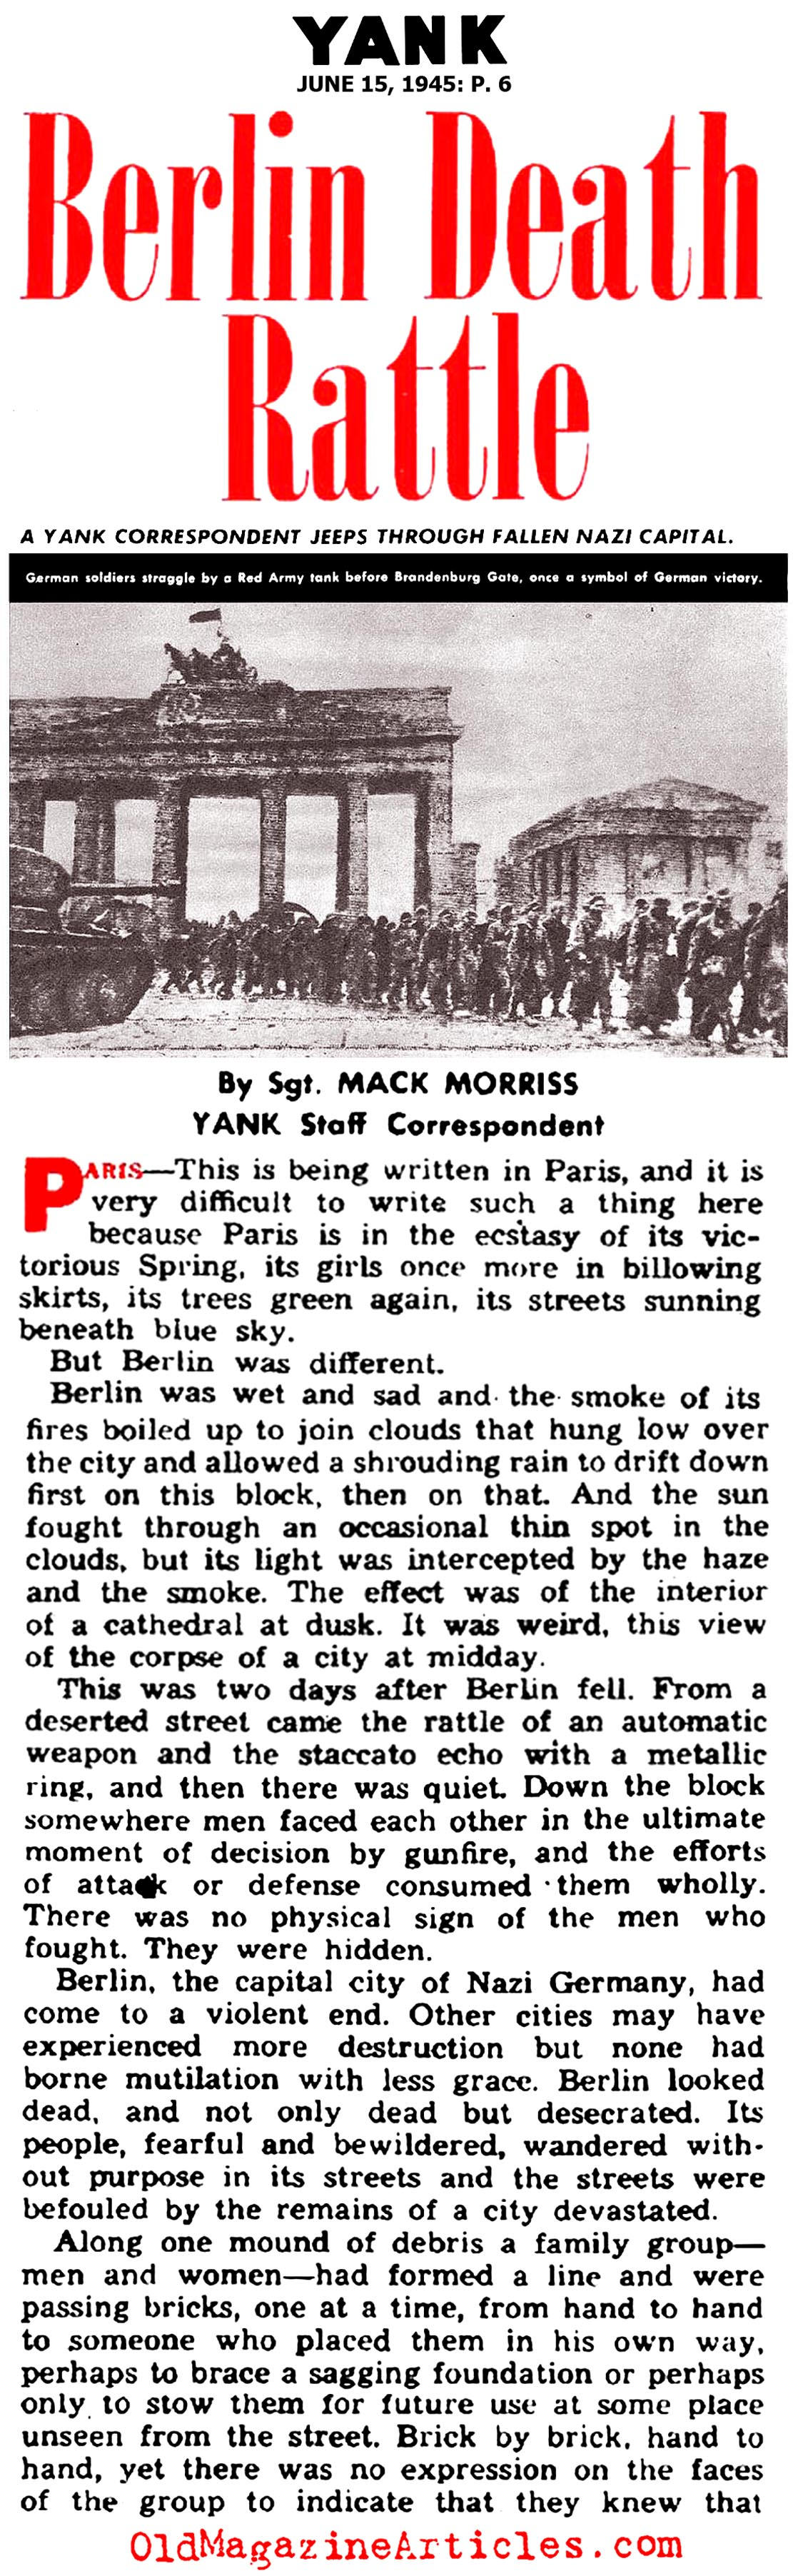 The End of the War in Berlin (Yank Magazine, 1945)